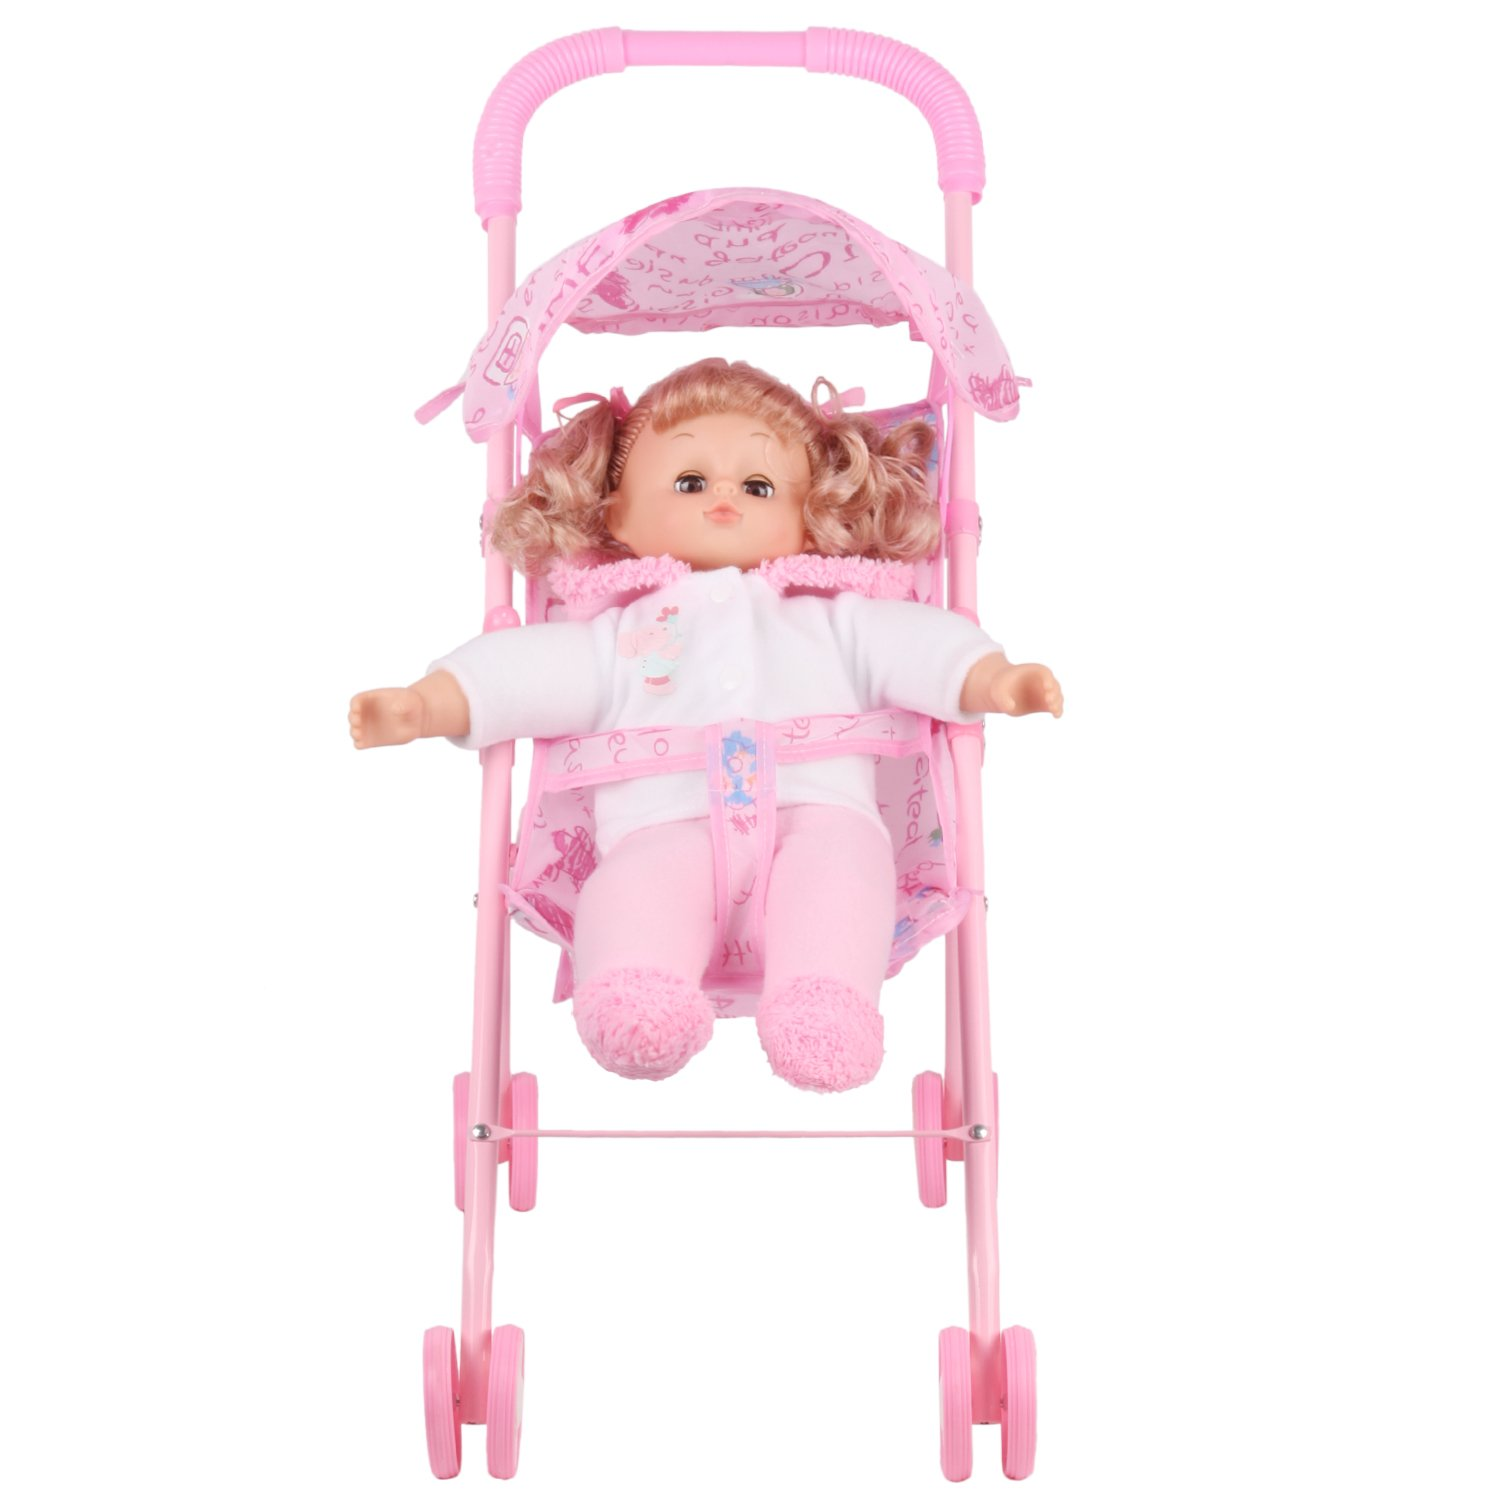 Irony Pink Doll Stroller Baby Carriage Foldable with 4 Wheels with Hood